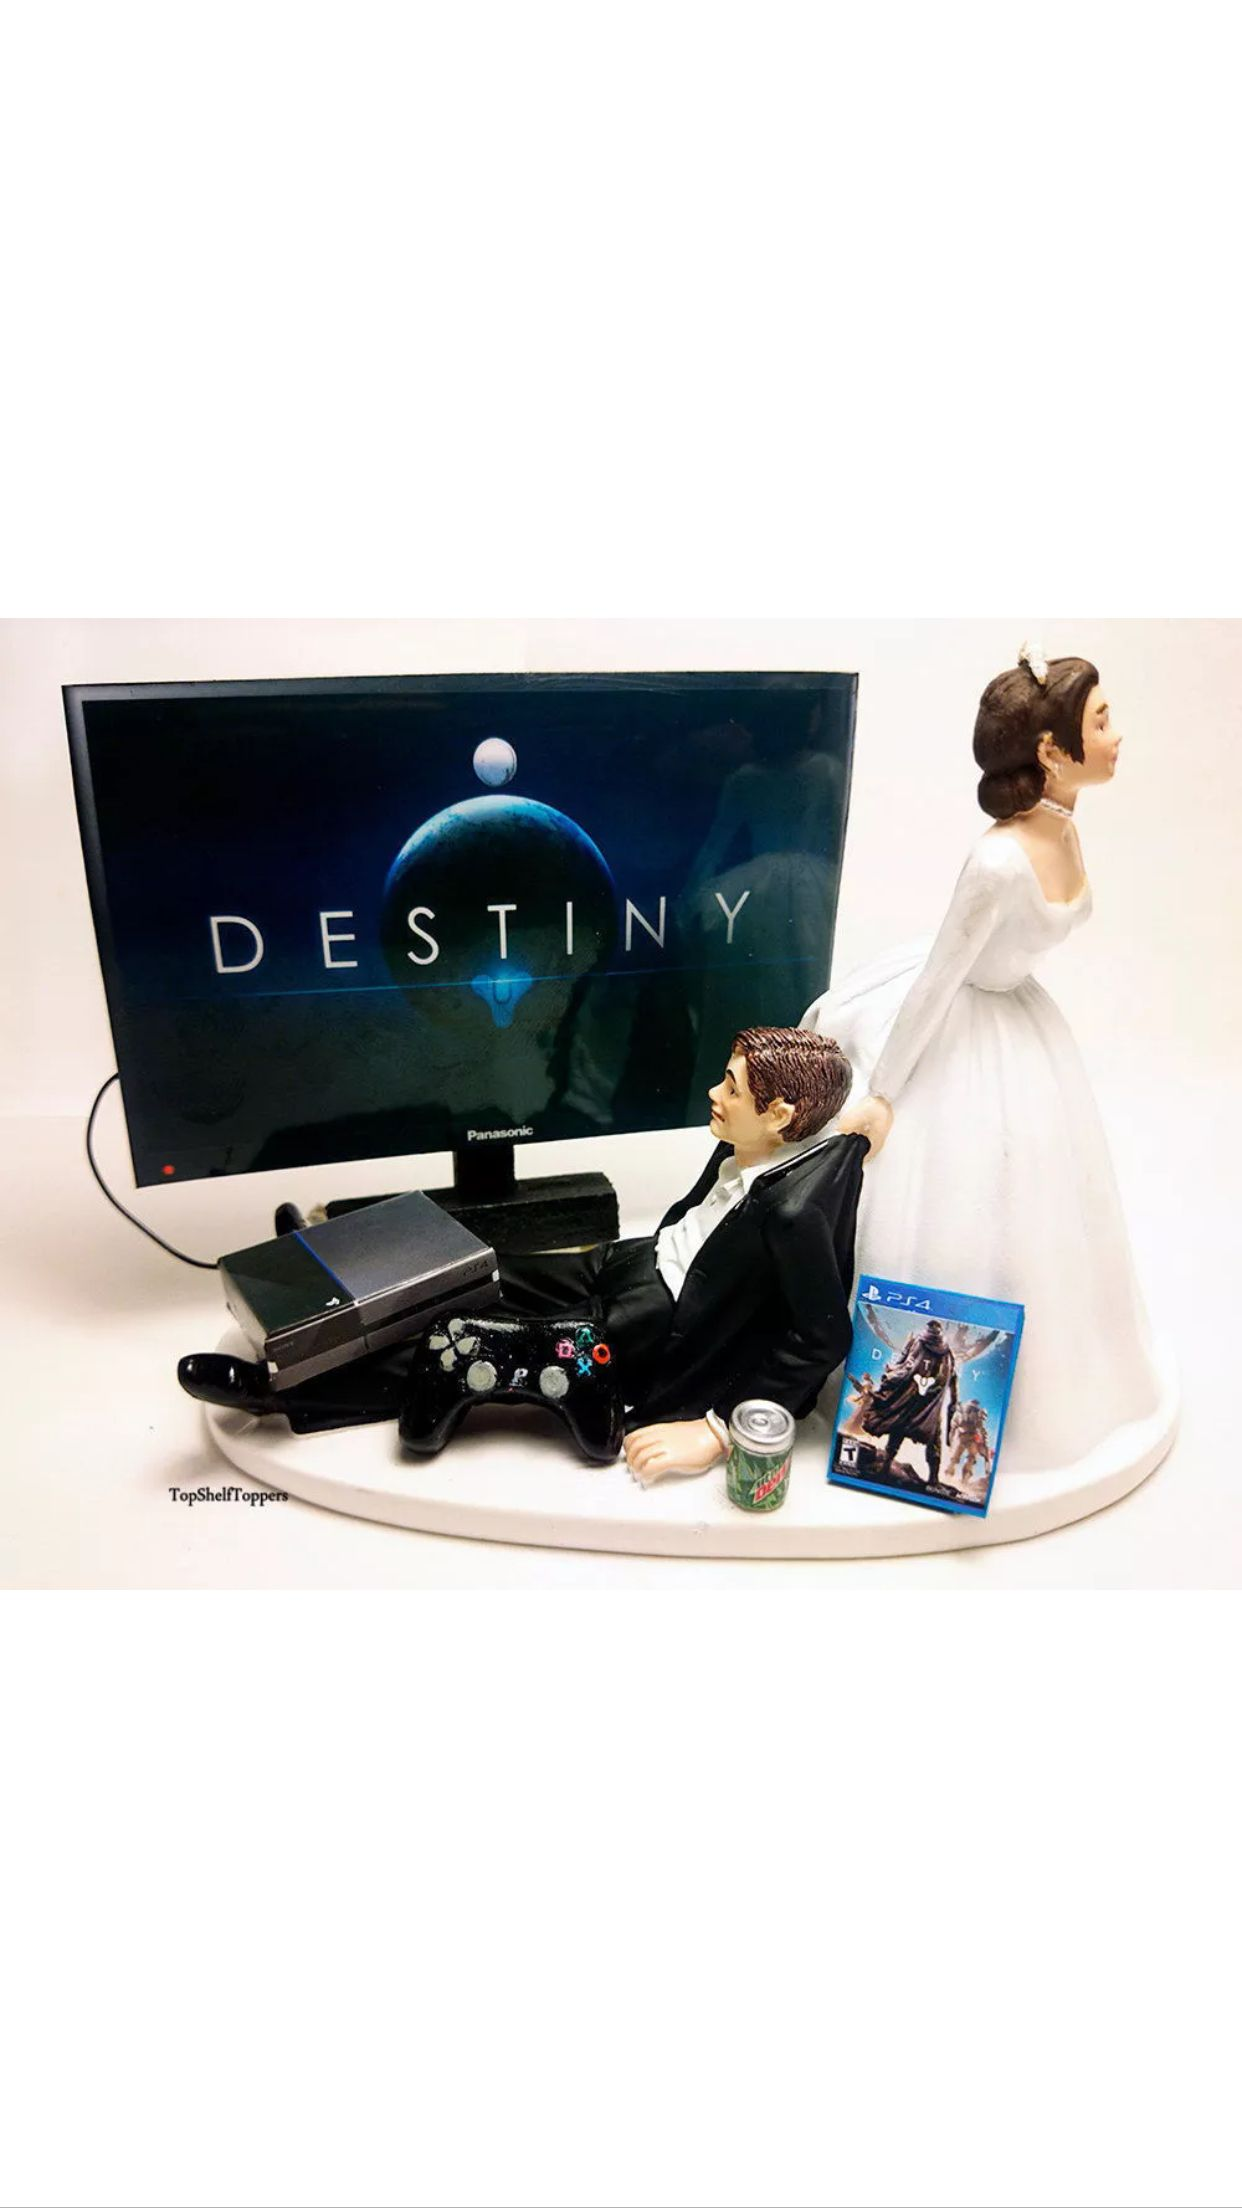 Destiny gamer wedding cake topper